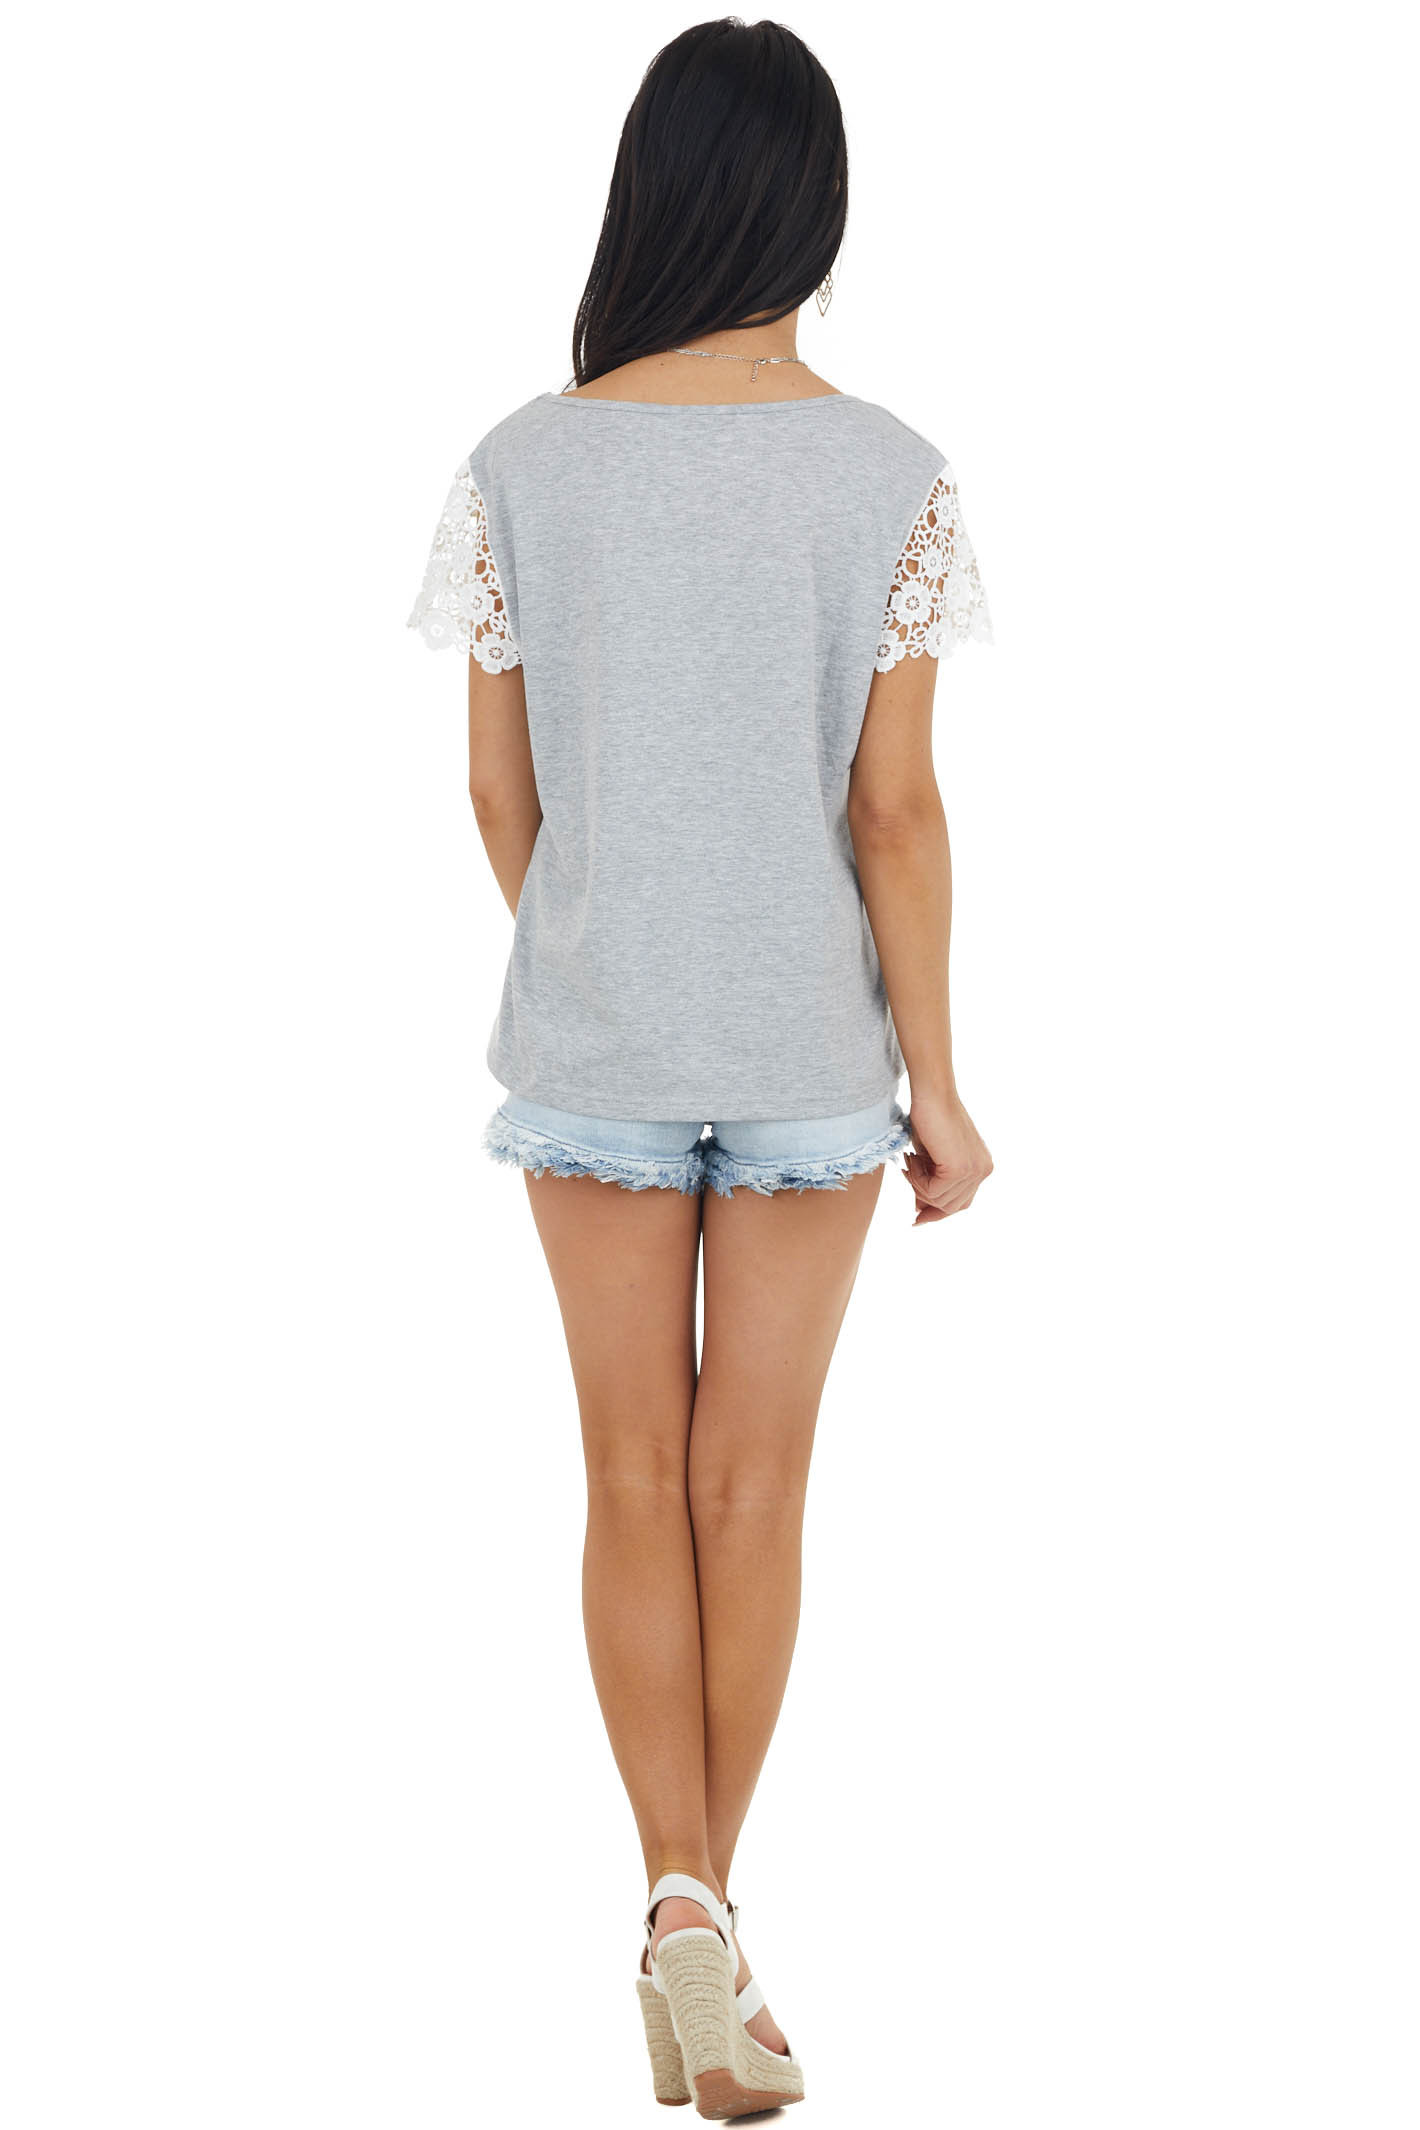 Heather Grey Top with Short White Crochet Lace Cap Sleeves